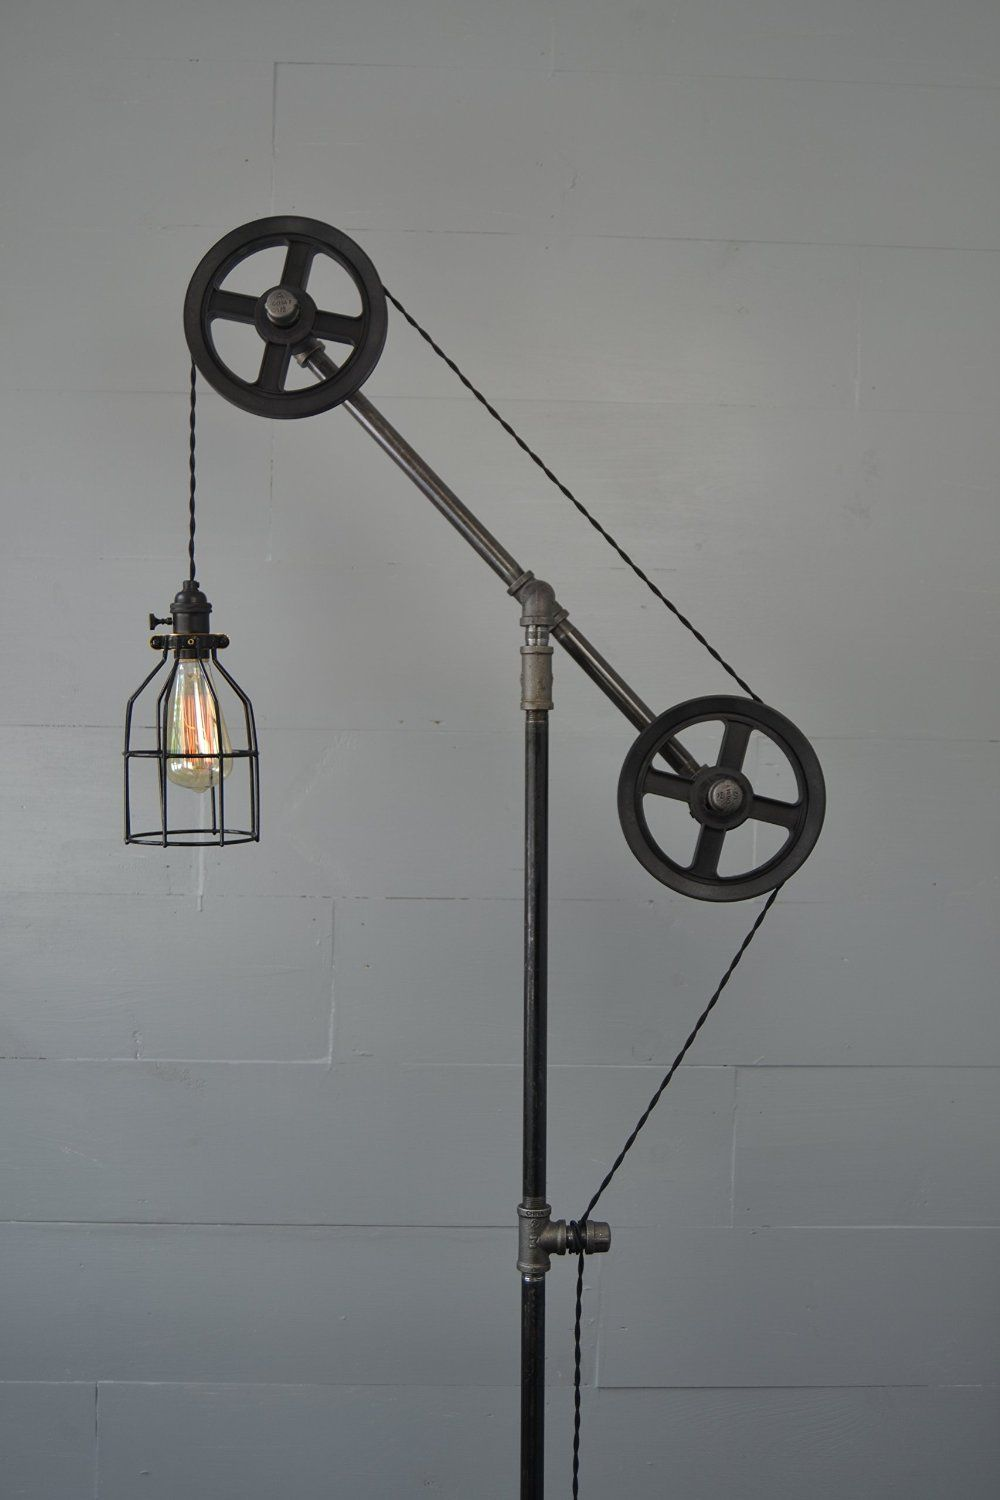 Leuchte Industriedesign Steampunk Industrial Floor Lamp | Industrie Strahler, Lampe, Industriedesign Lampen